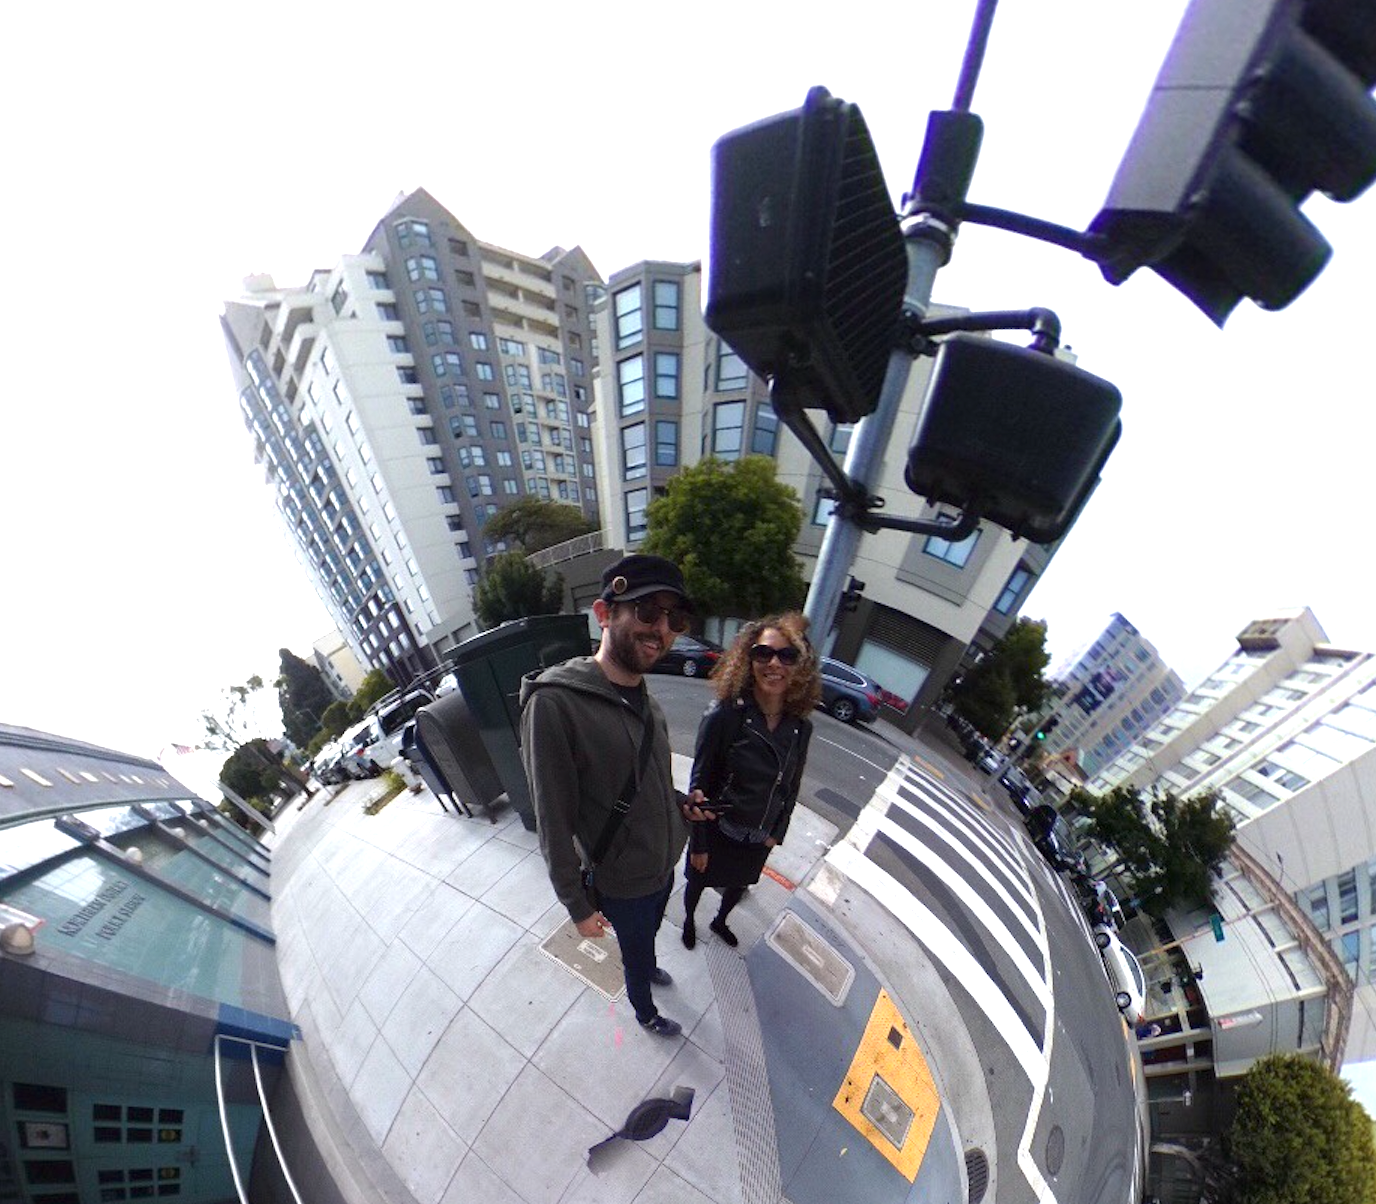 Creating Virtual Reality for Public Good: A Case Study